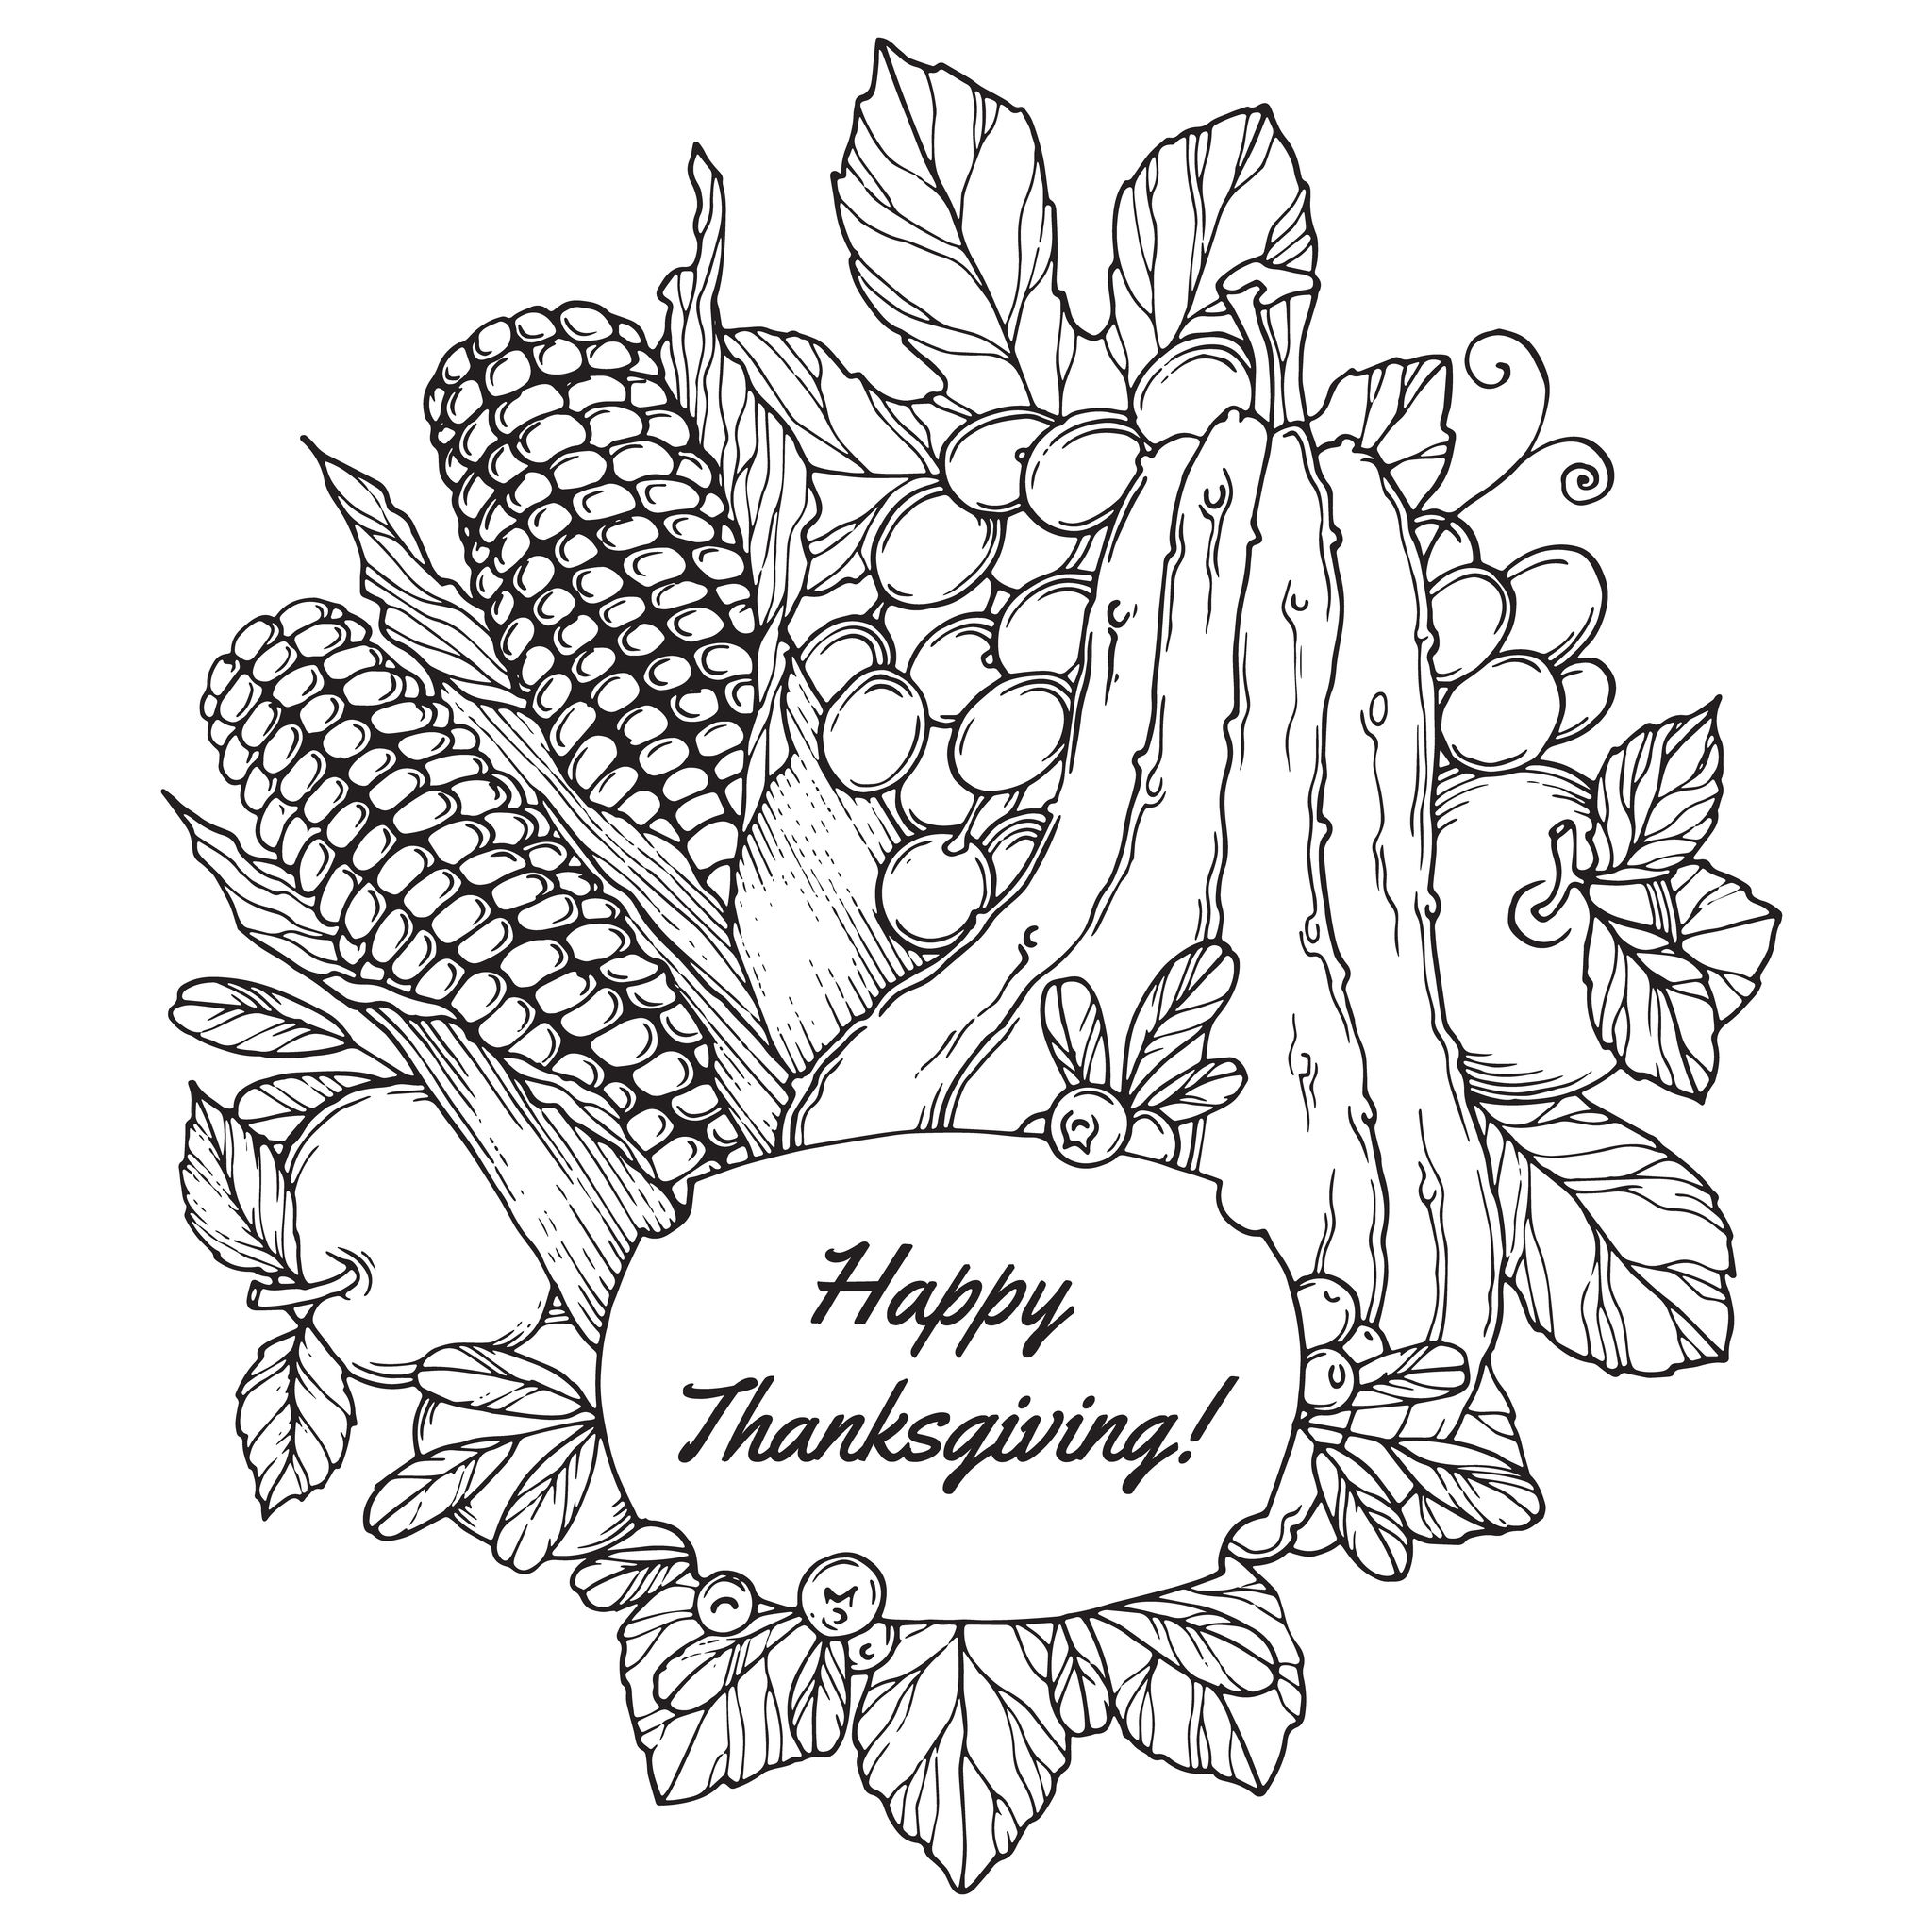 thanksgiving printable coloring pages adults - photo#7